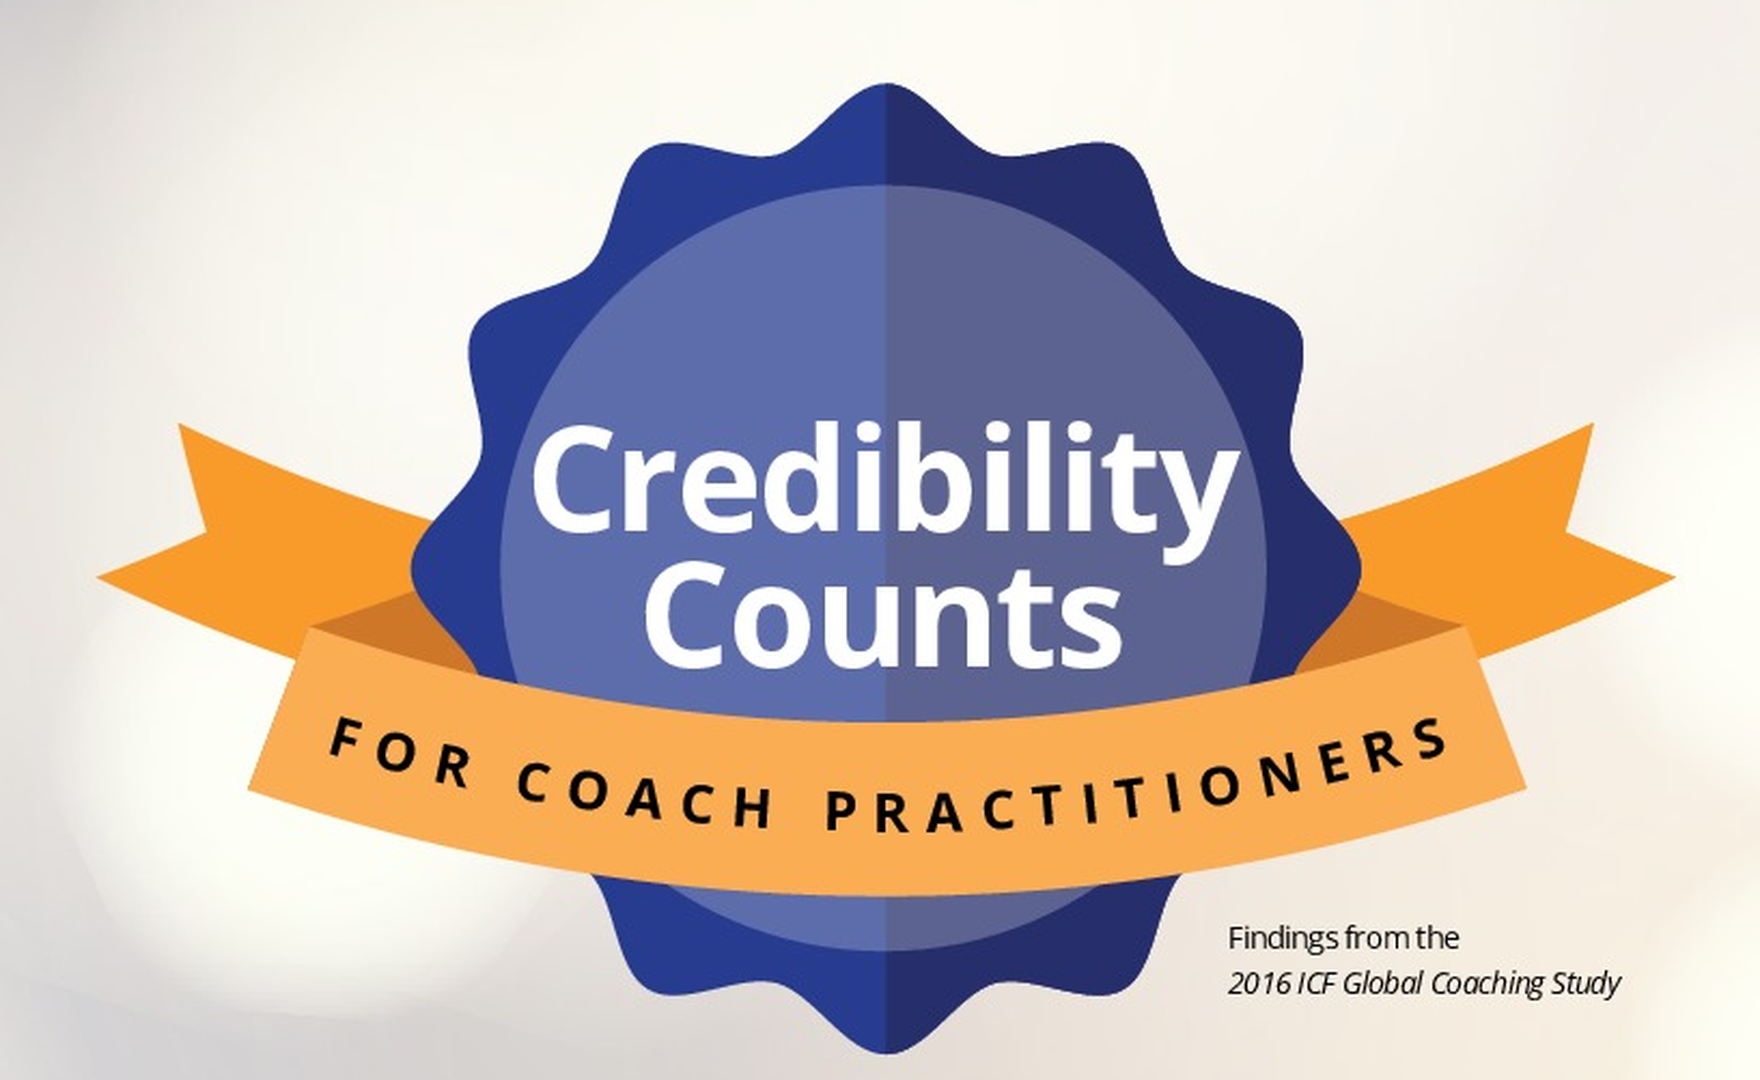 Call yourself a coach? Credibility counts